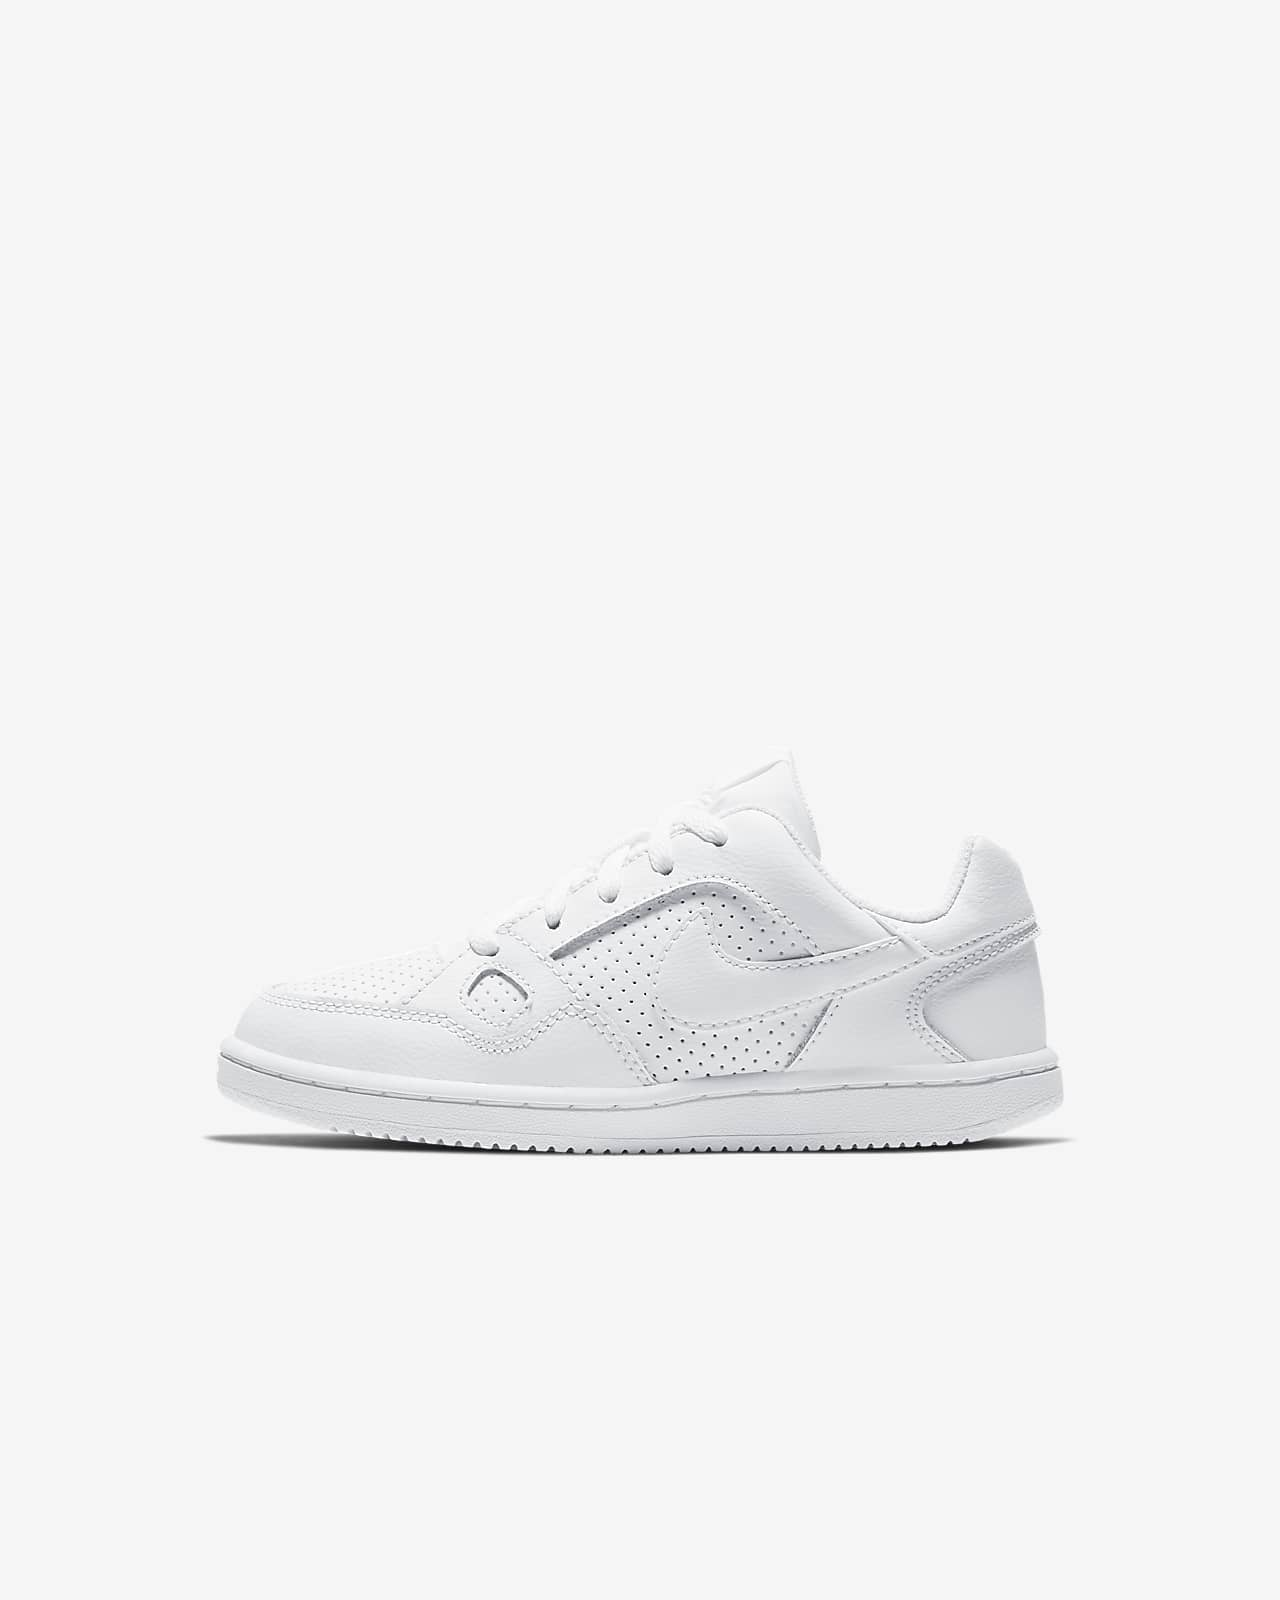 Parche Decorar personaje  Nike Son of Force Younger Kids' Shoe. Nike PH